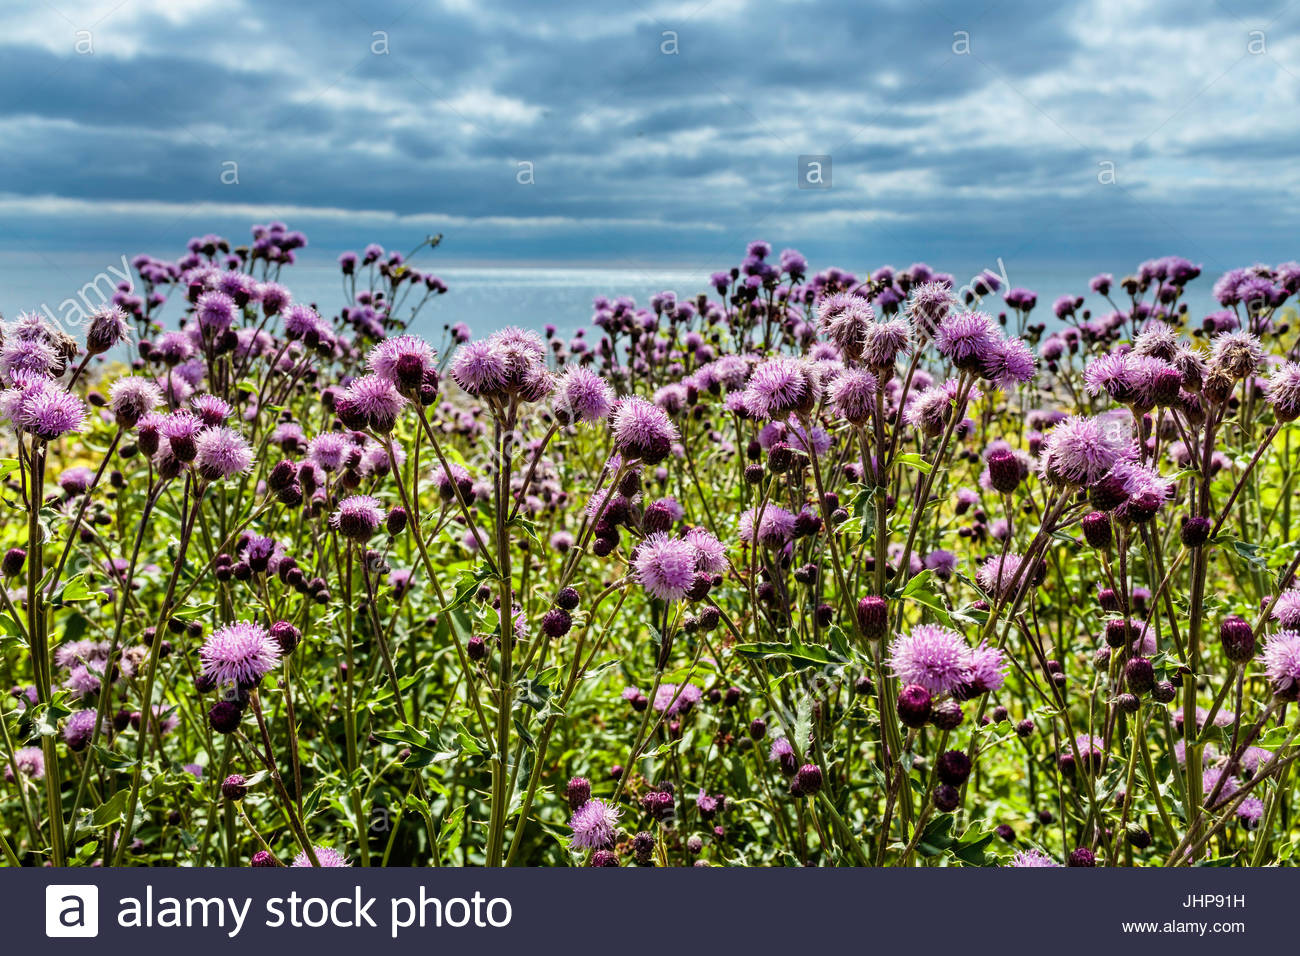 creeping thistle Canada Thistle Cirsium arvense flower wildflower Canadian Thistle California Thistle Corn Thistle - Stock Image